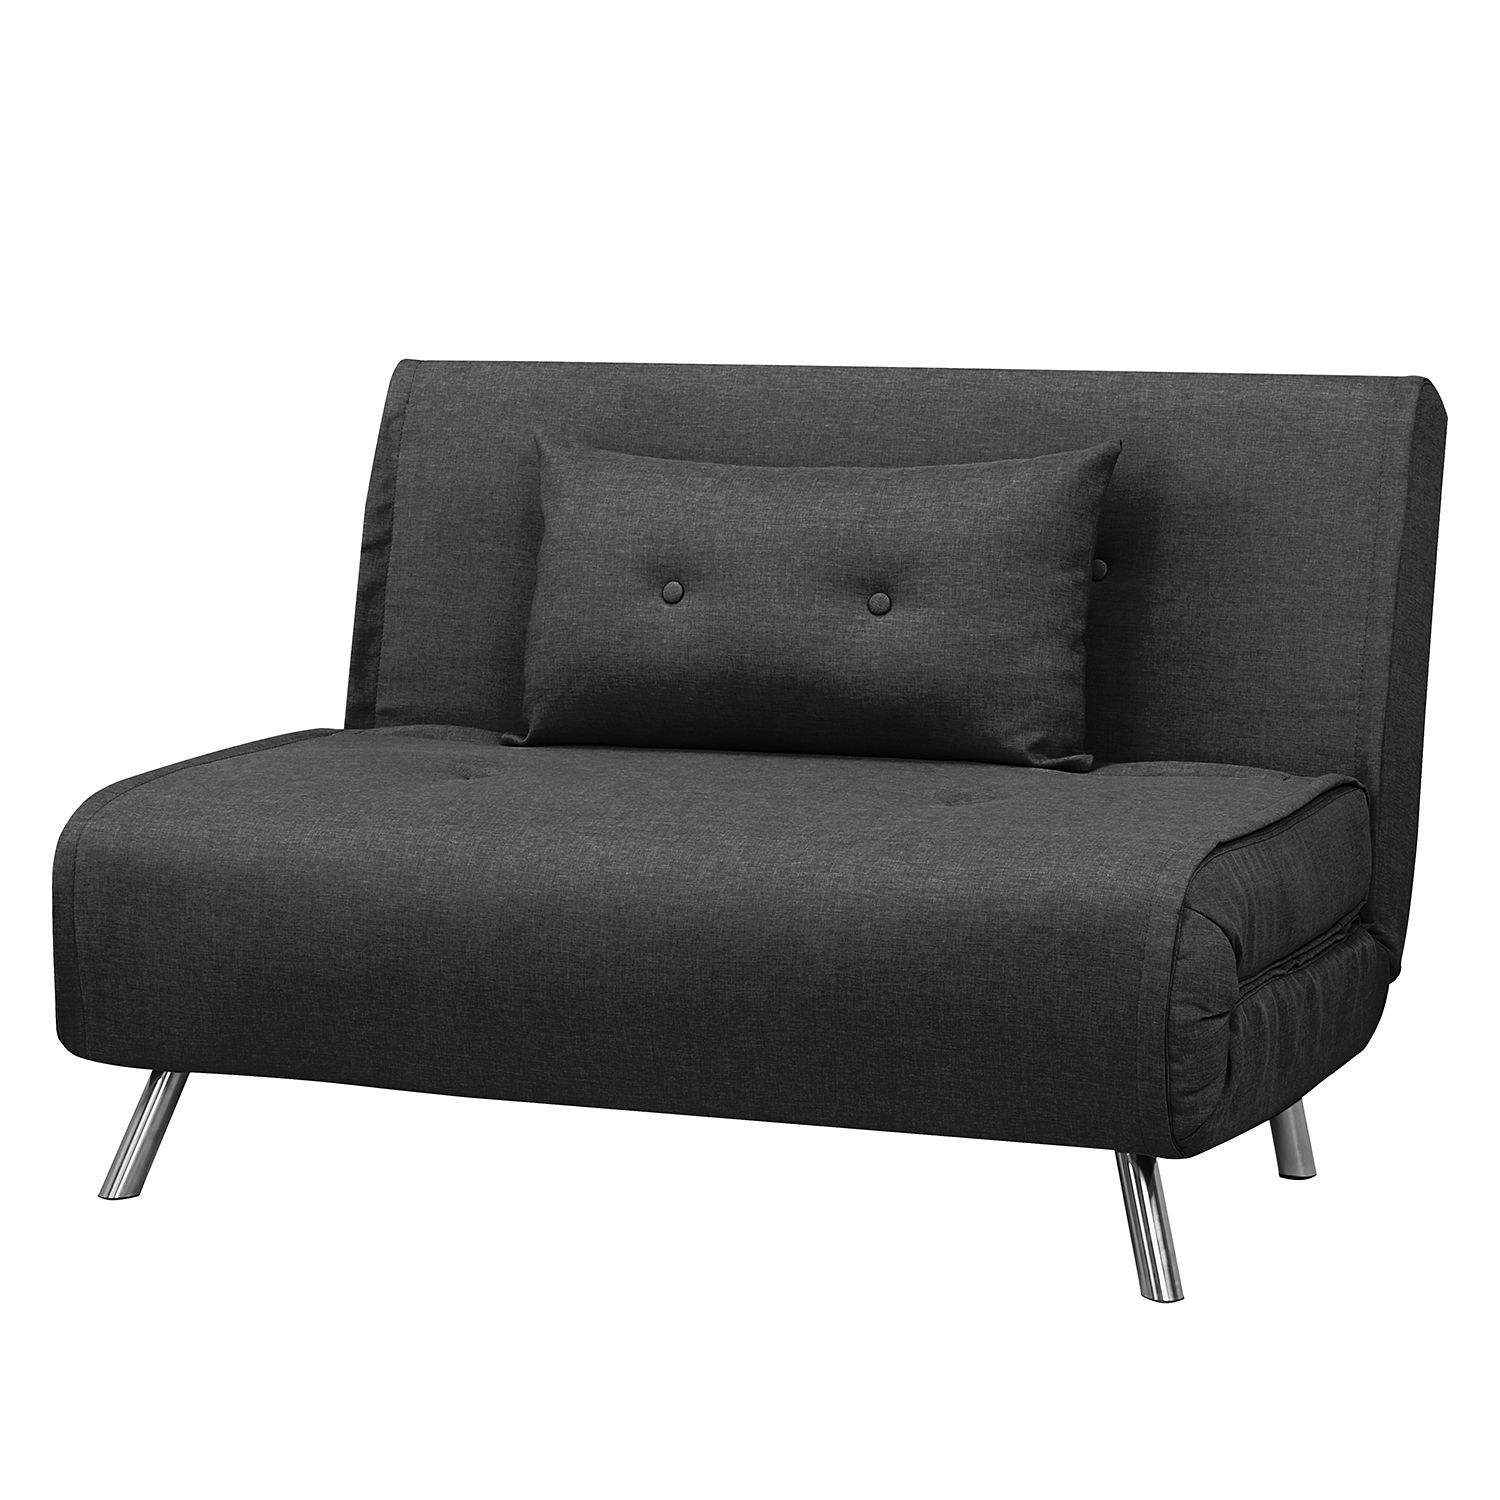 Ledersofa Billig Kaufen Home24 Schlafsofa Almora In 2019 Sofas Sofa Furniture Sofa